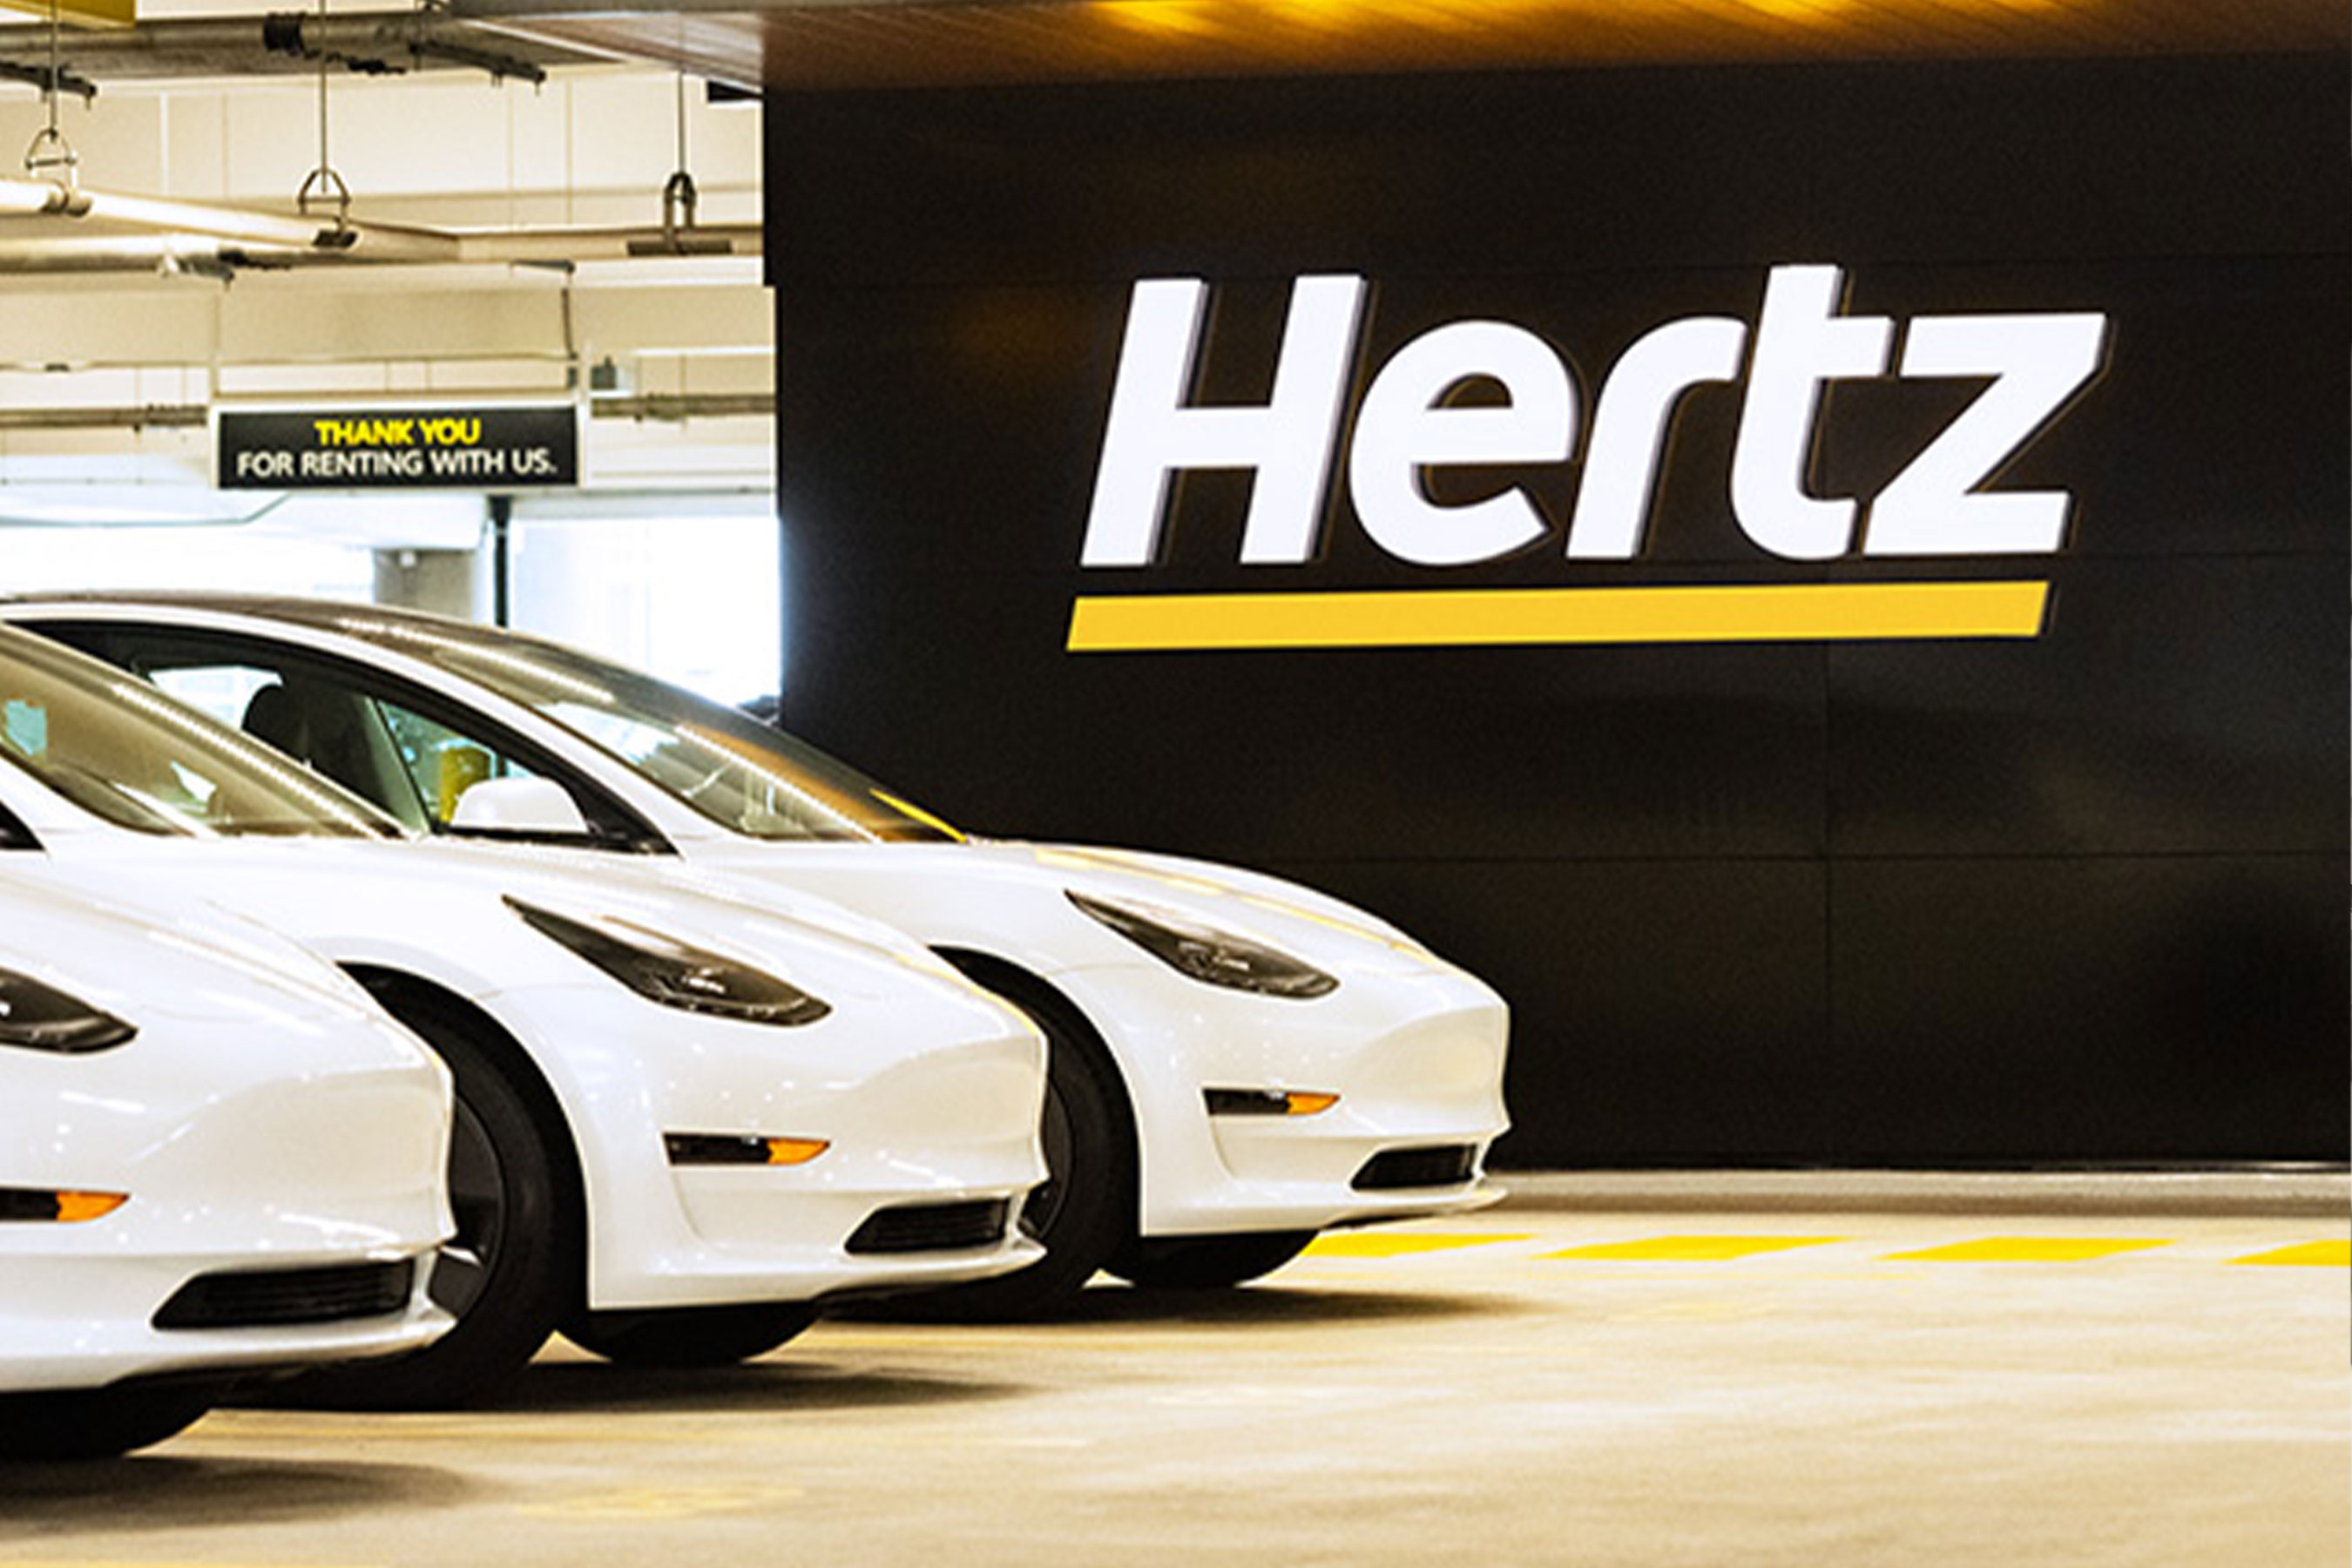 Tesla Model 3 electric vehicles at a Hertz airport location. Photo by E.R. Davidson